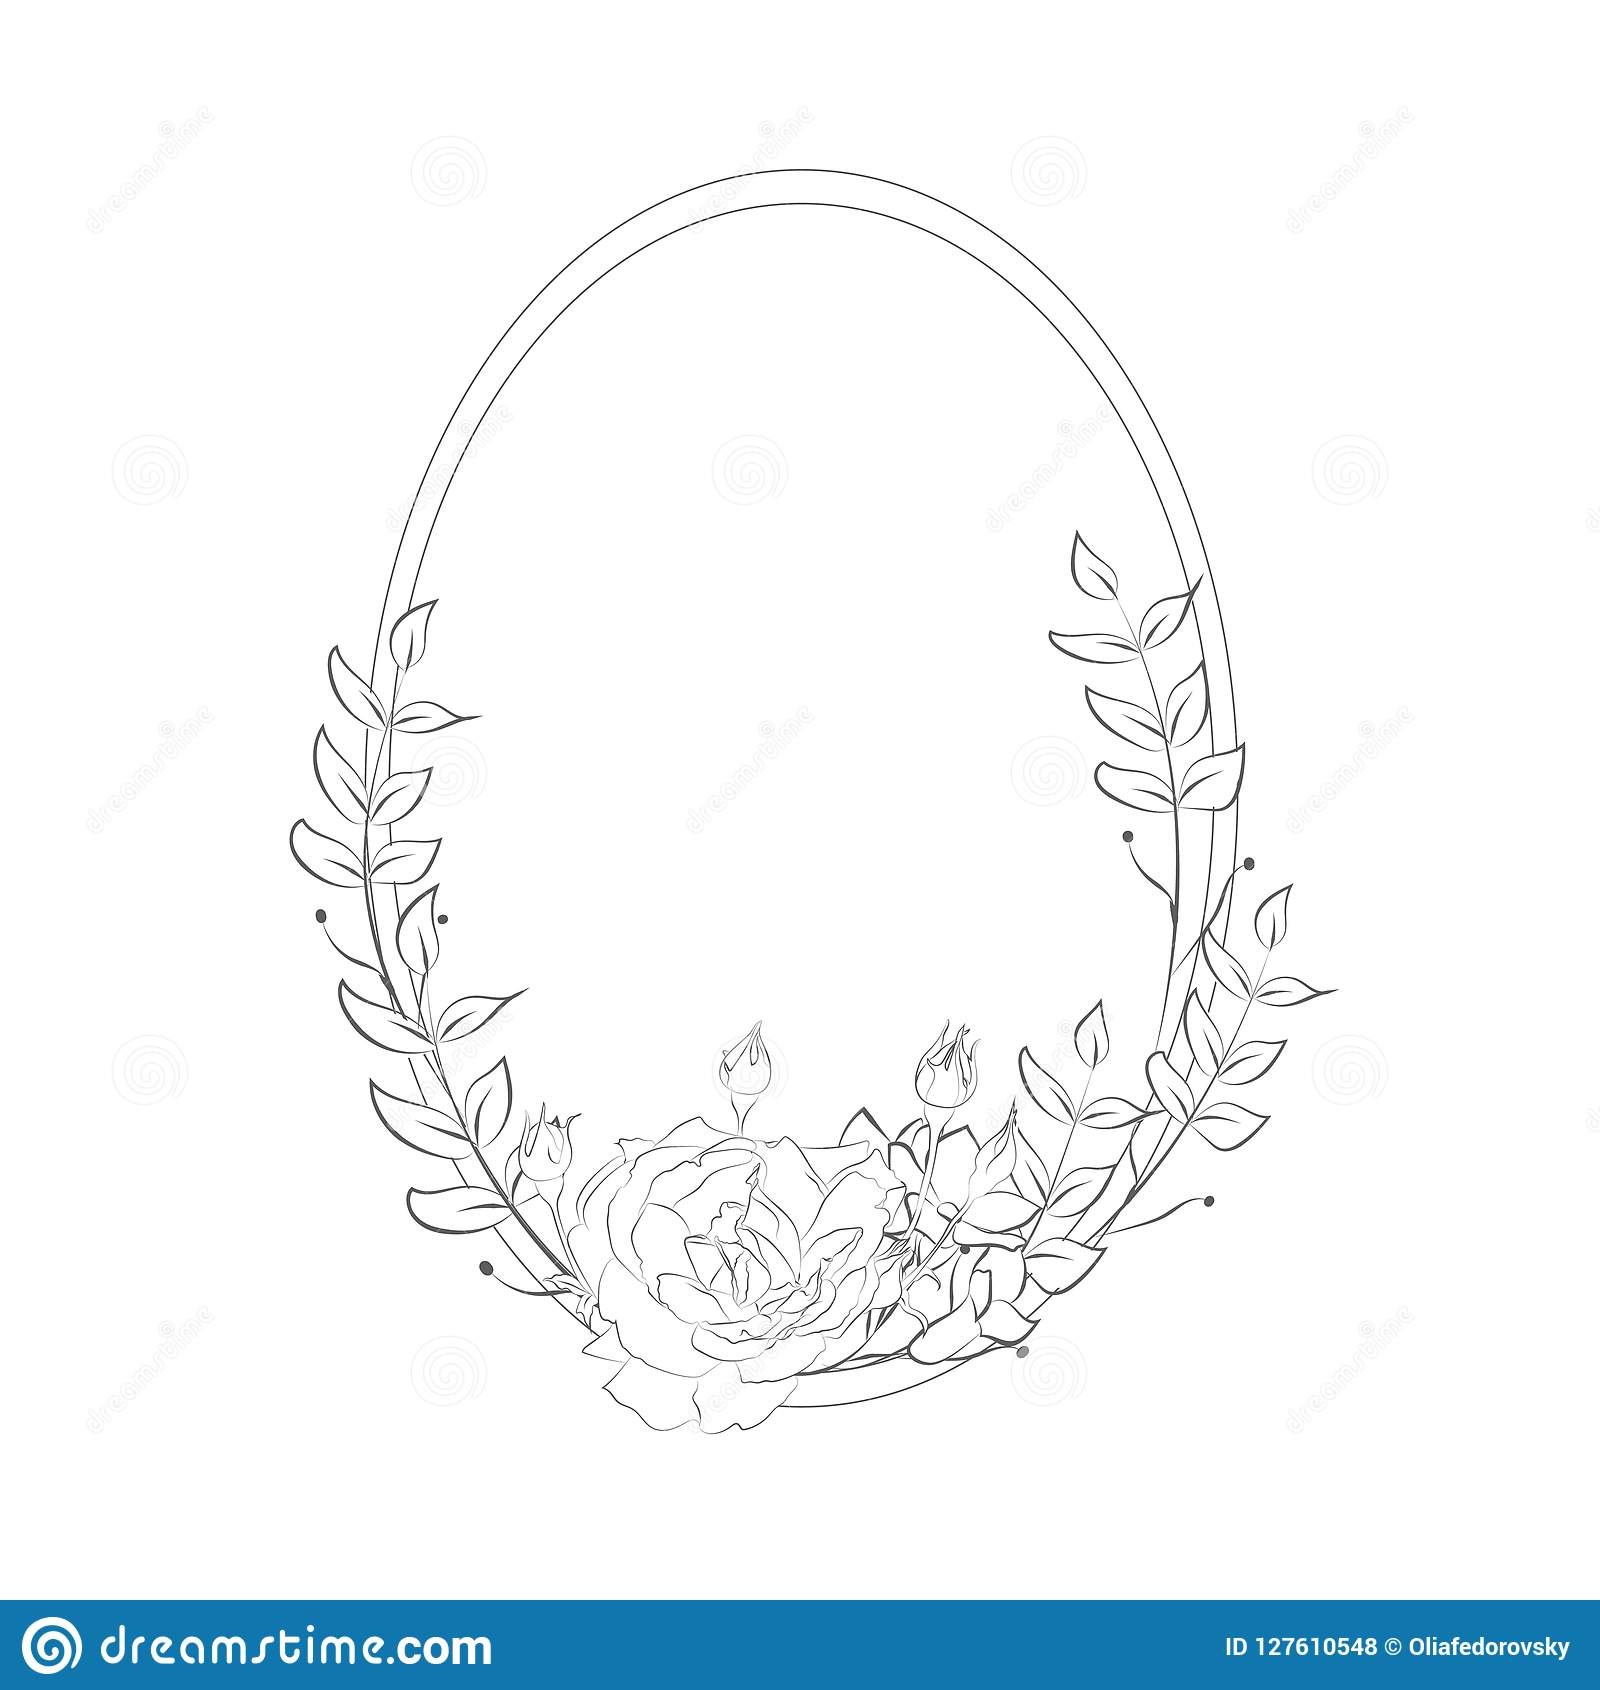 Simple line drawing floristic frame border with delicate cotton flowers rose forget me not branches plants with round geometric shape